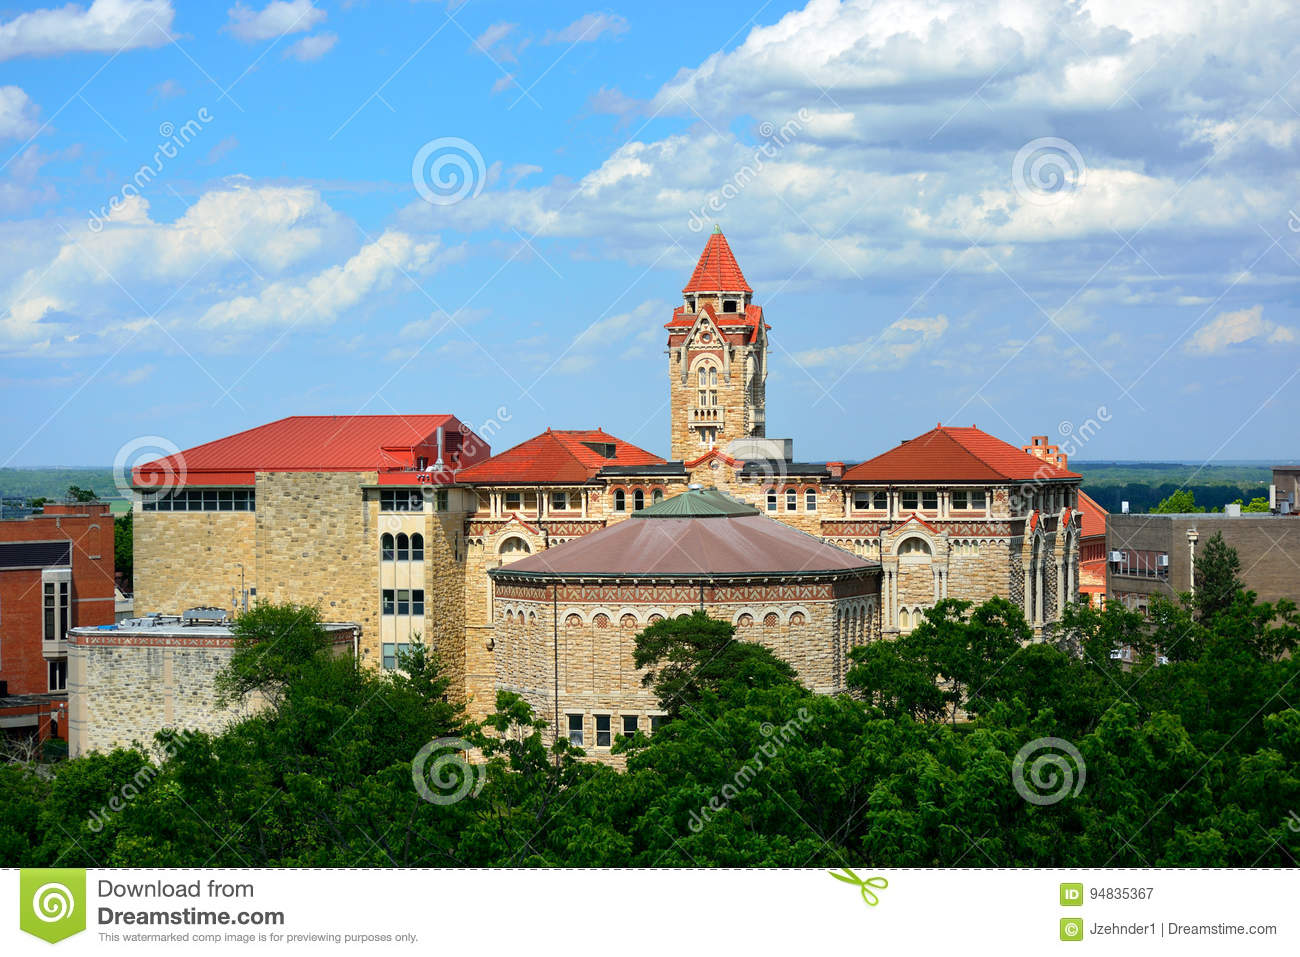 Buildings on the University of Kansas Campus in Lawrence, Kansas